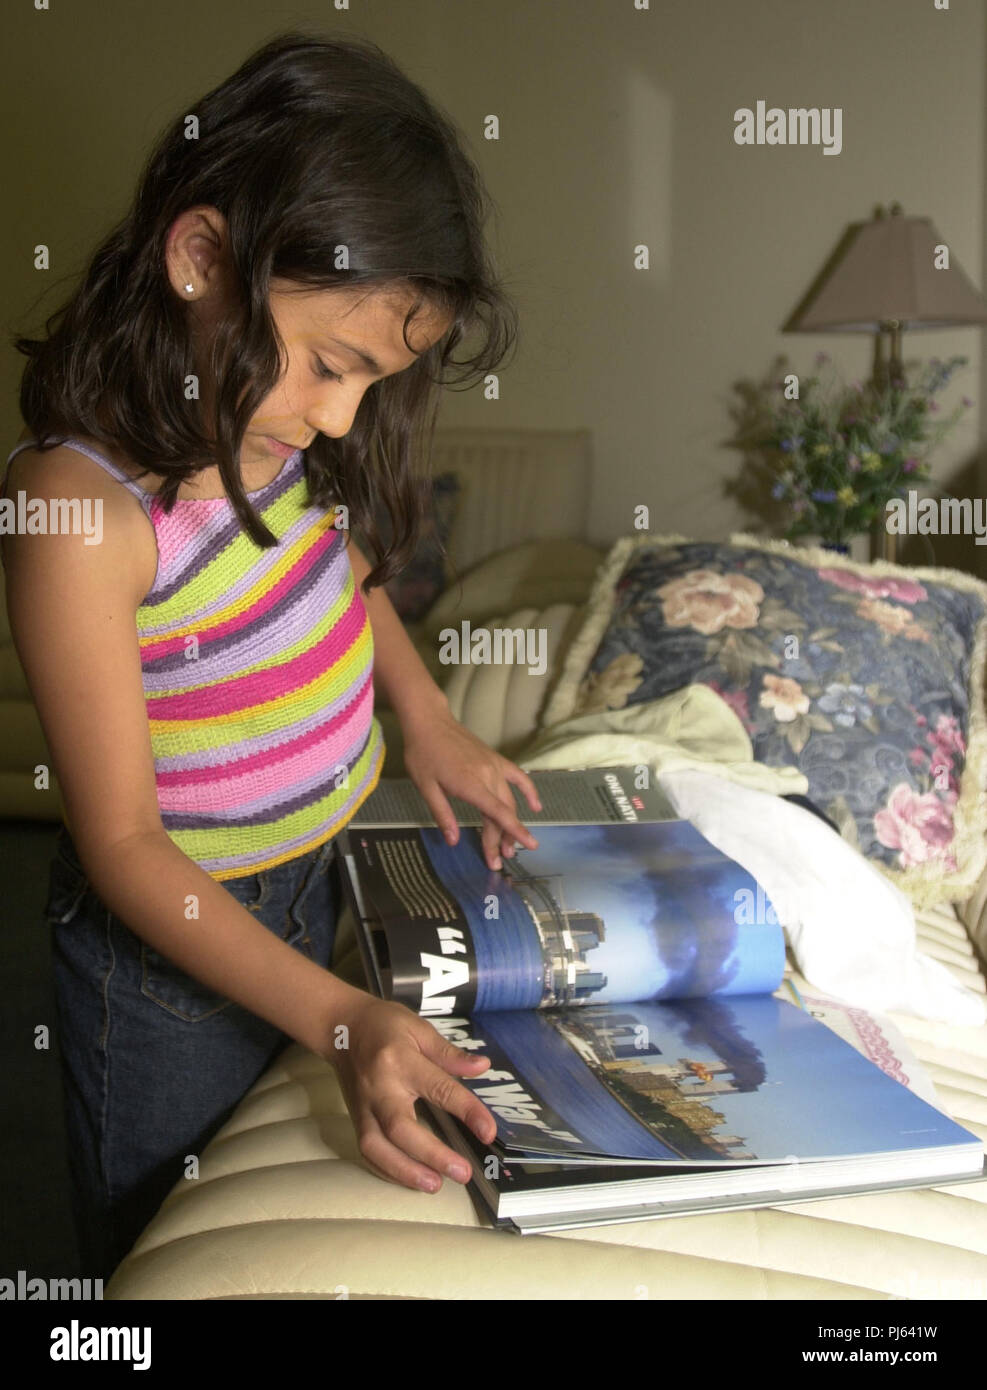 Chantal Guerrero, who will be 8 on August 20, 2002, looks through a life magazine book on September 11. She pauses on a picture of the burning World Trade Center Towers. Chantal was in the class with President Bush when he found out about the terrorist act.  Almost one year after September 11th, the class of Mrs. Daniels meets again, interviews the night before the first day of school.  July 30, 2002. (Jessica Mann/Orlando Sentinel) - Stock Image